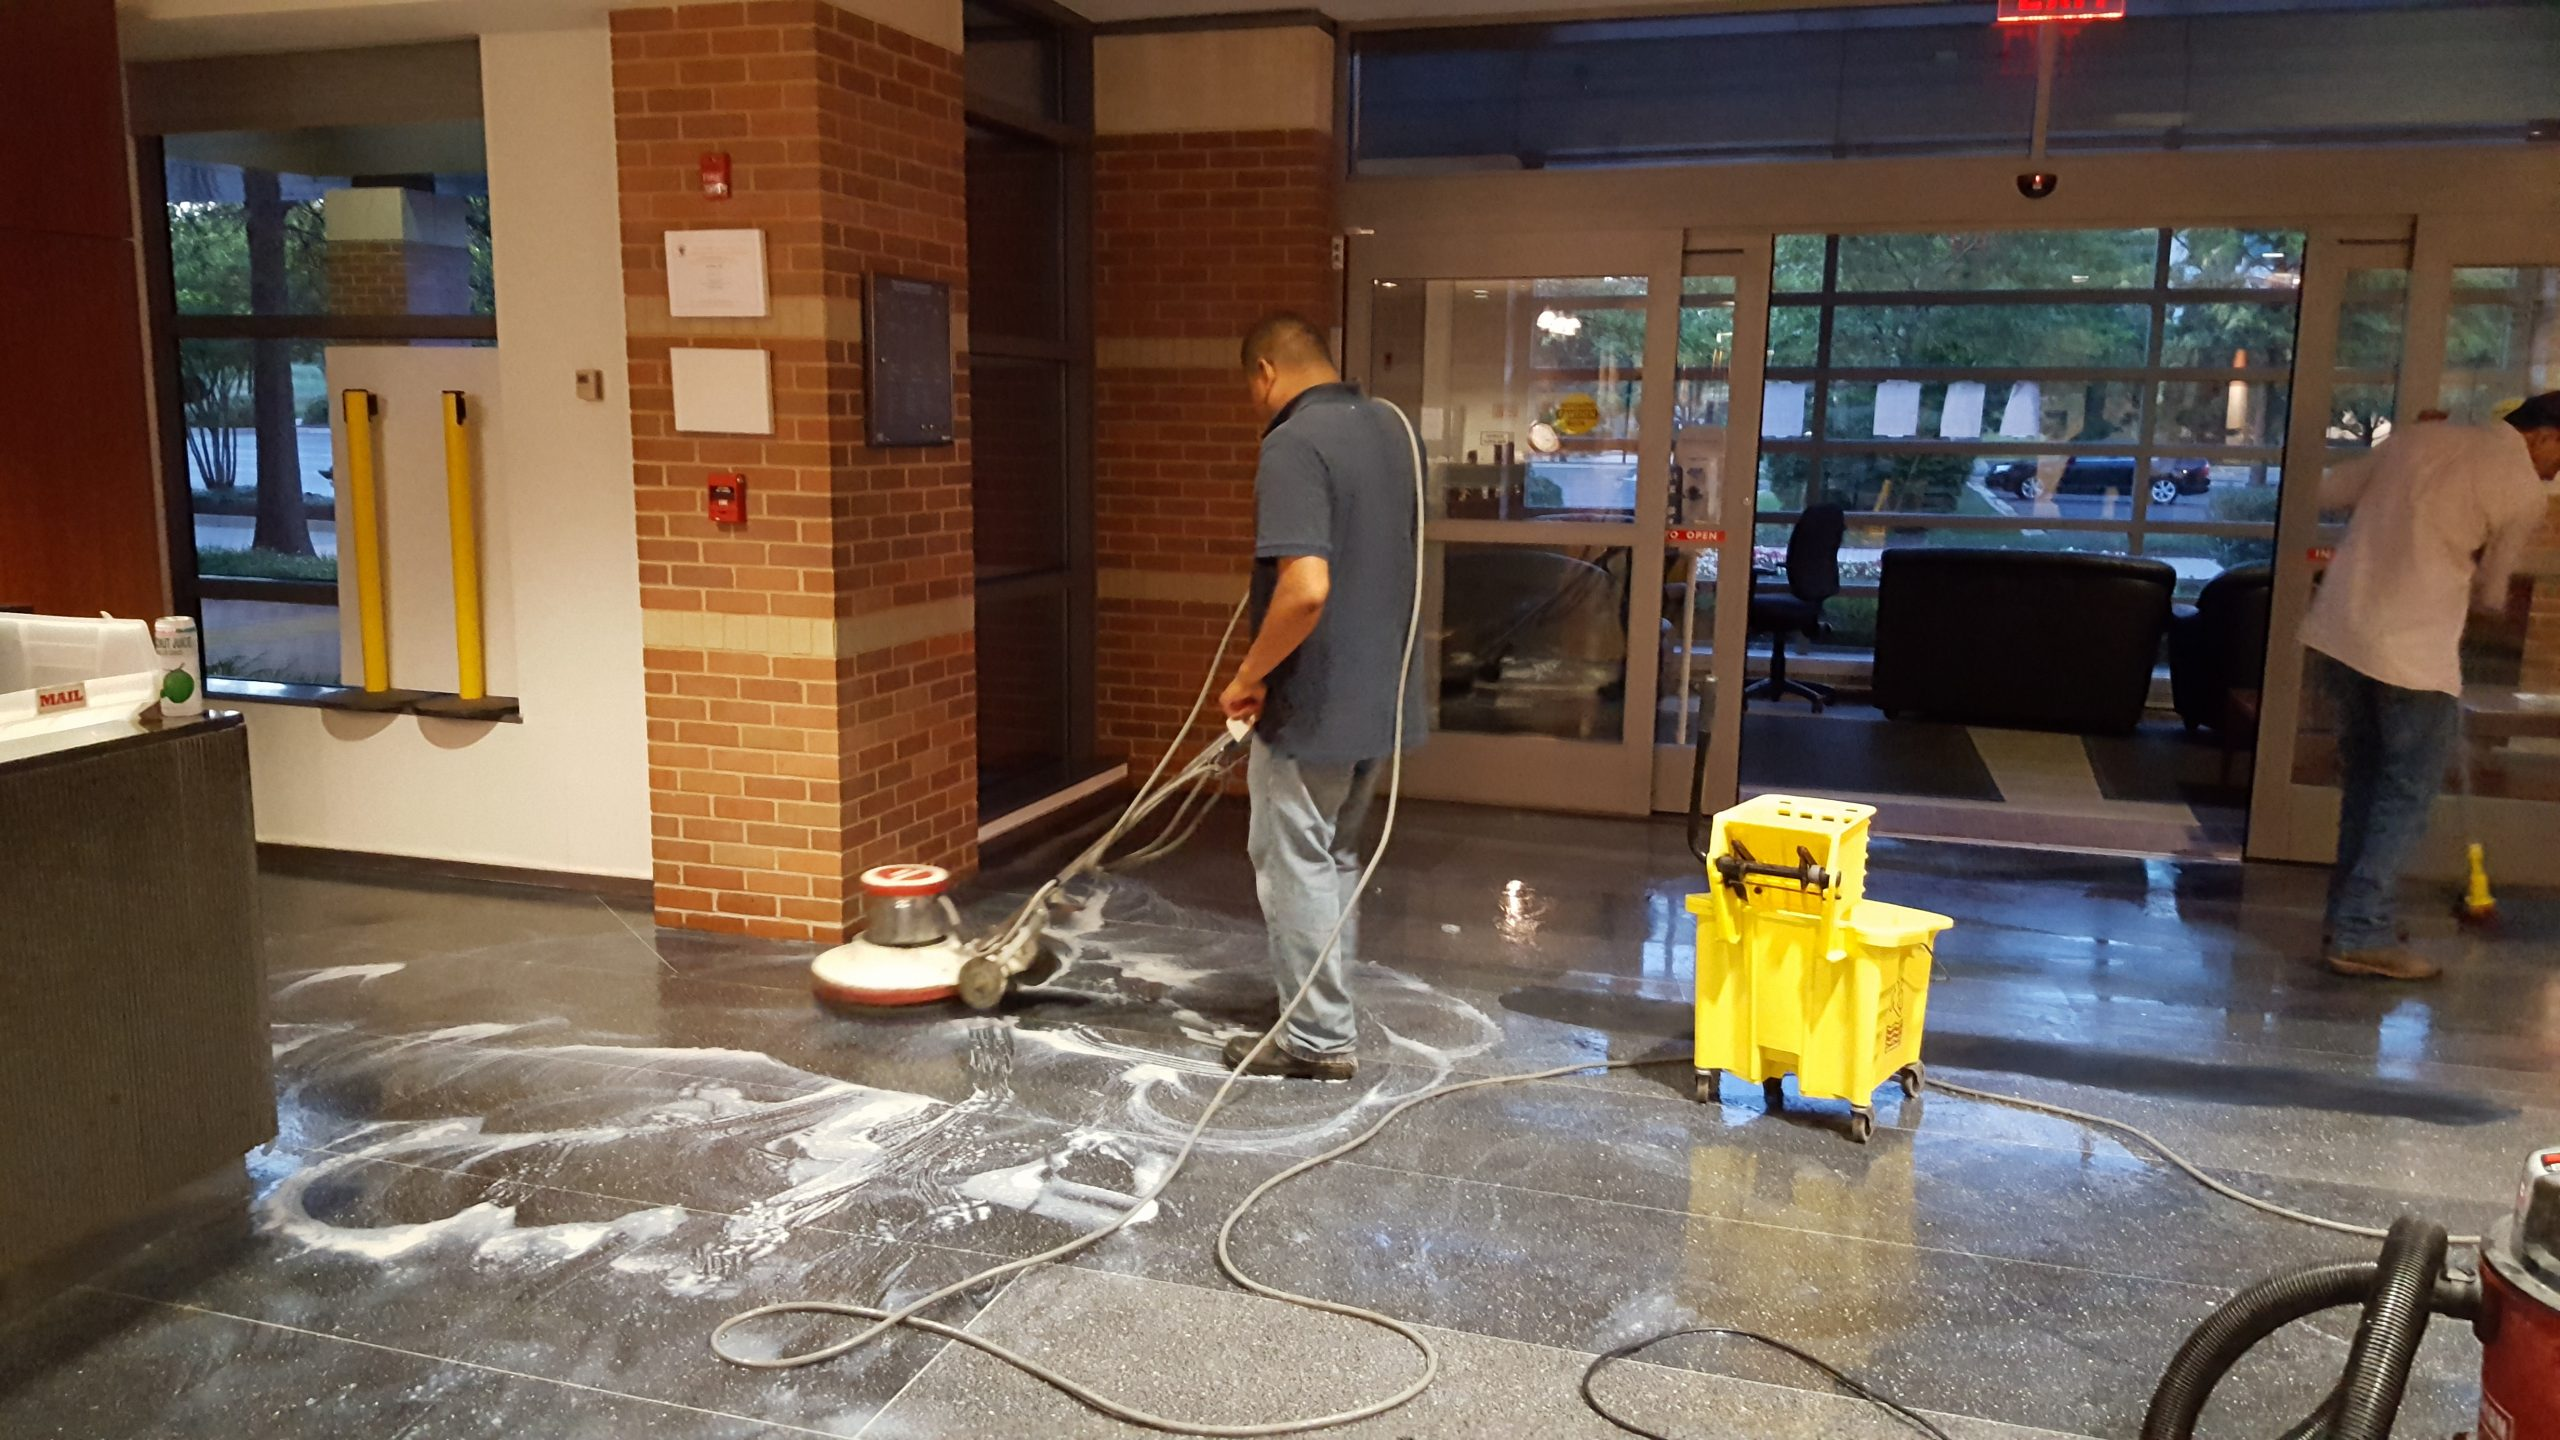 maryland commercial cleaners, maryland floor cleaning, business cleaning, business maintenance, building maint in md